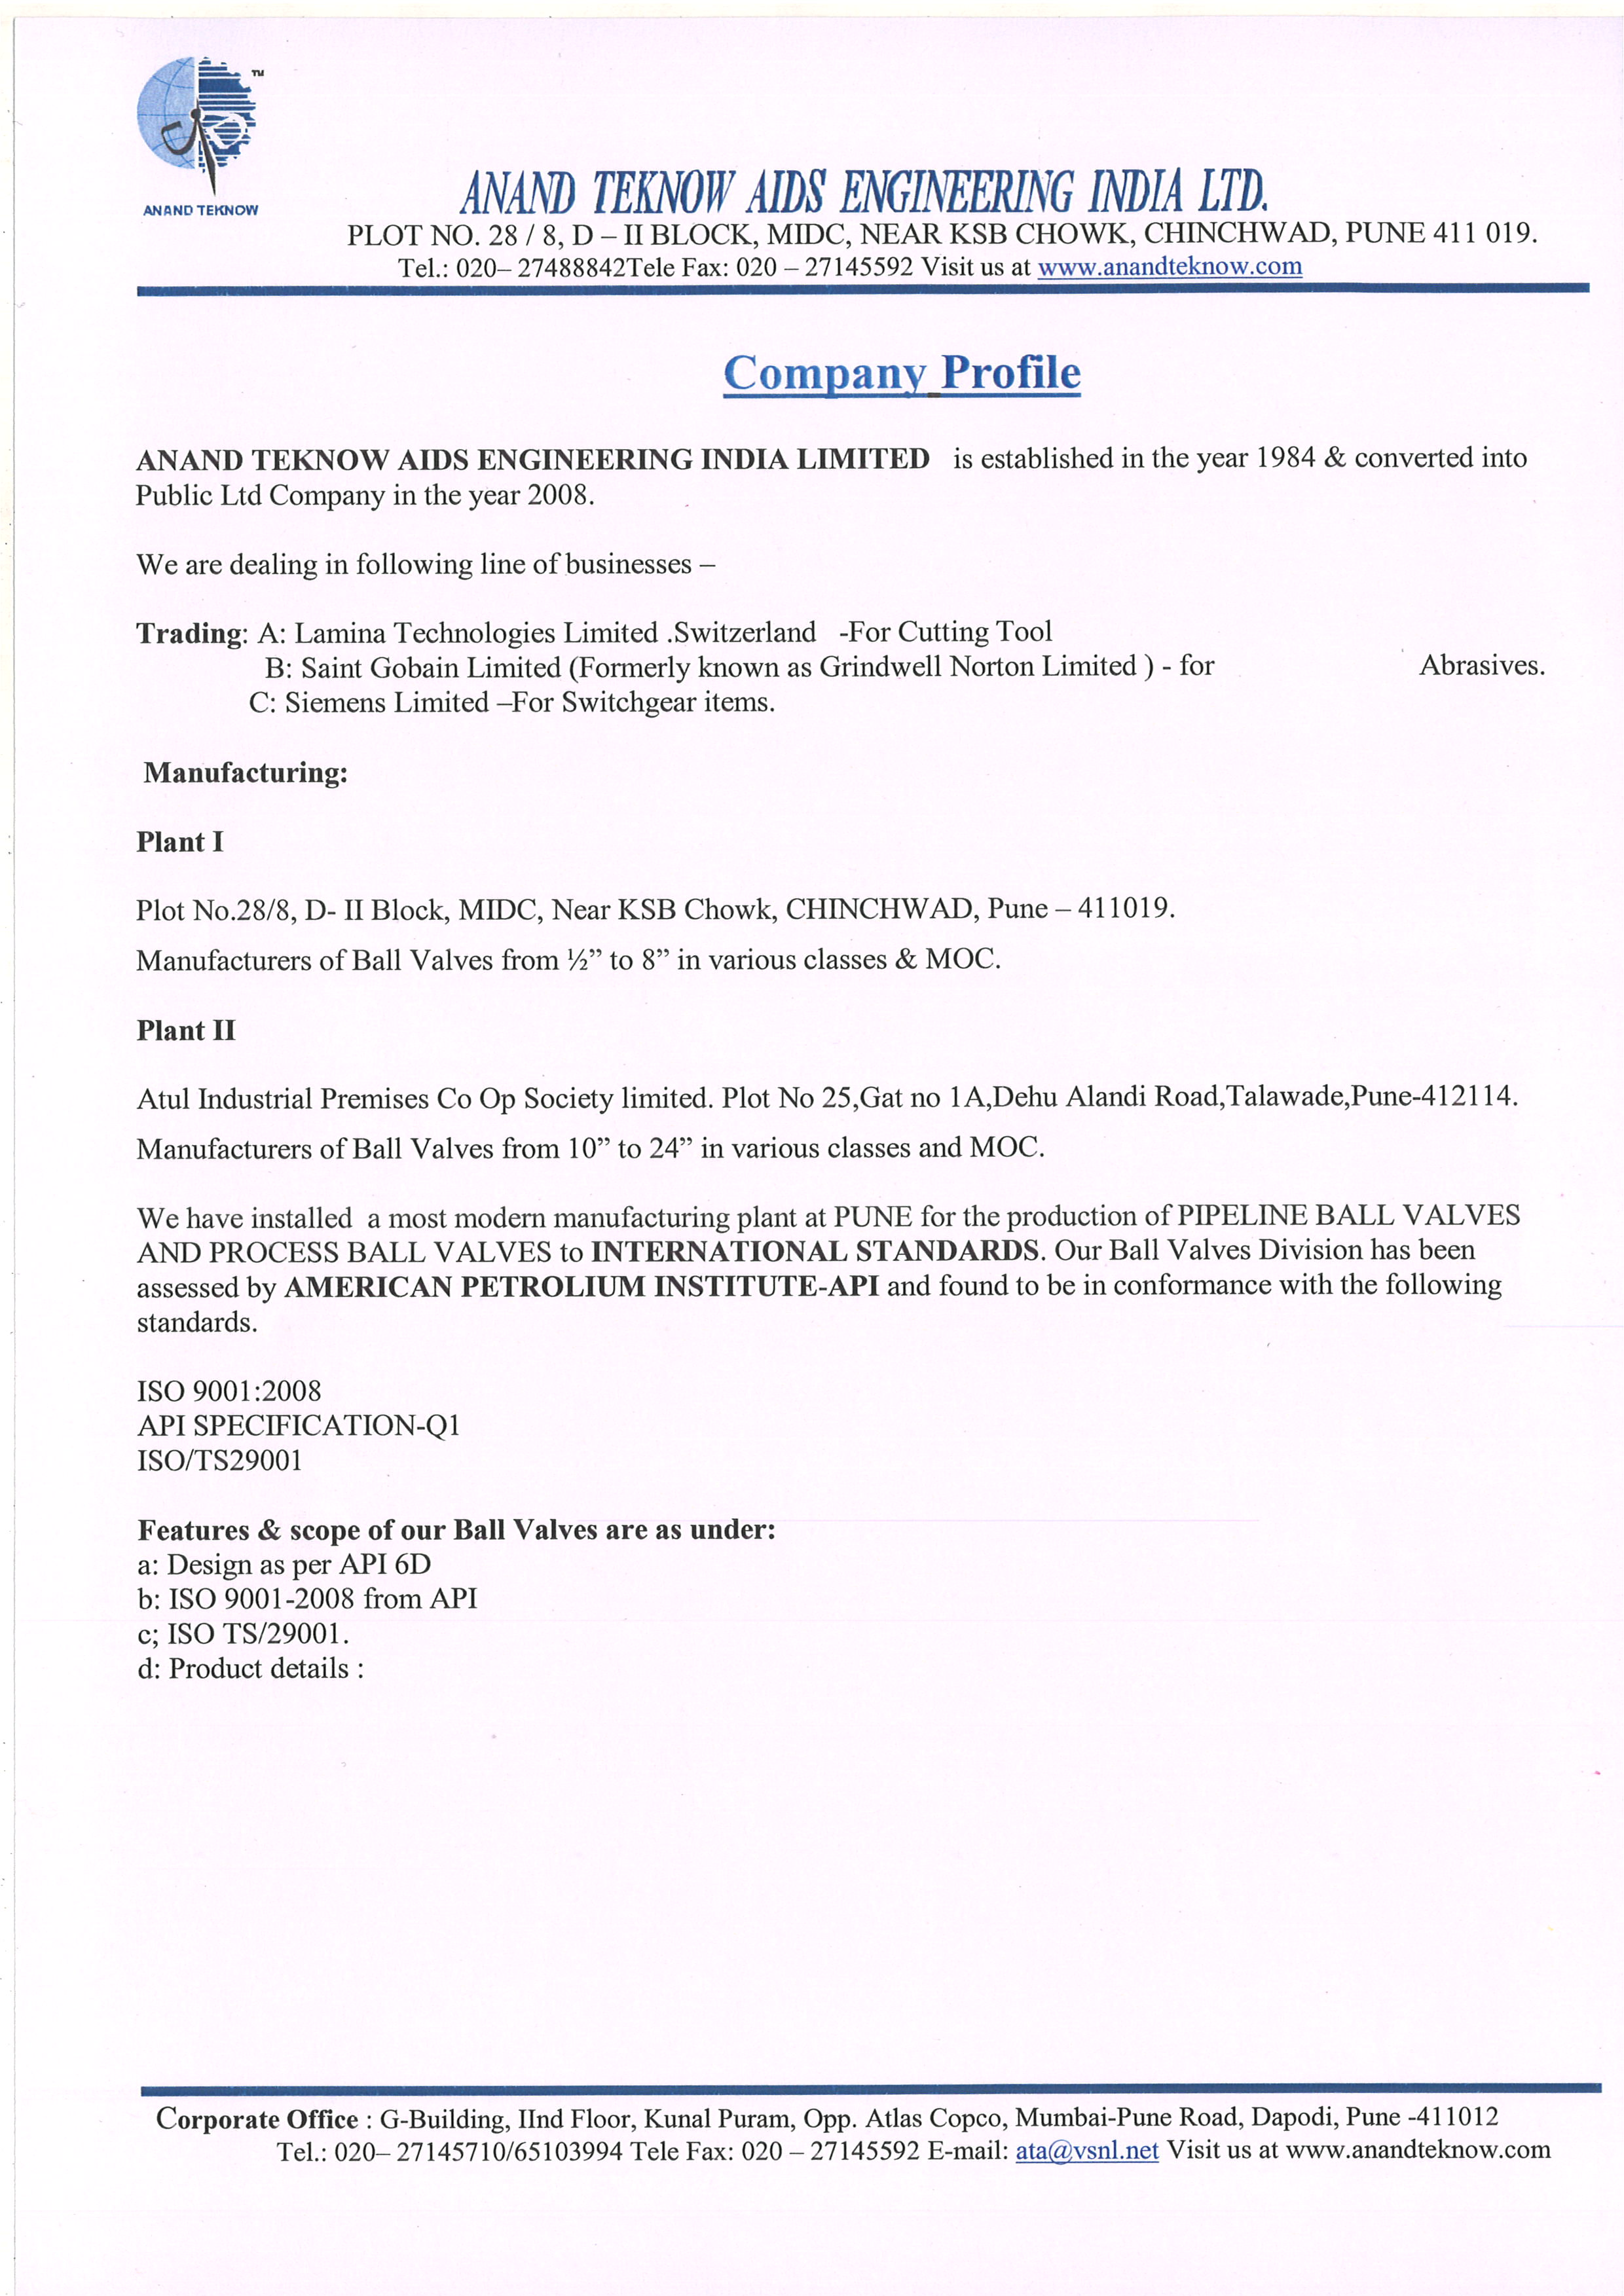 ANAND TEKNOW AIDS ENGINEERING INDIA LTD